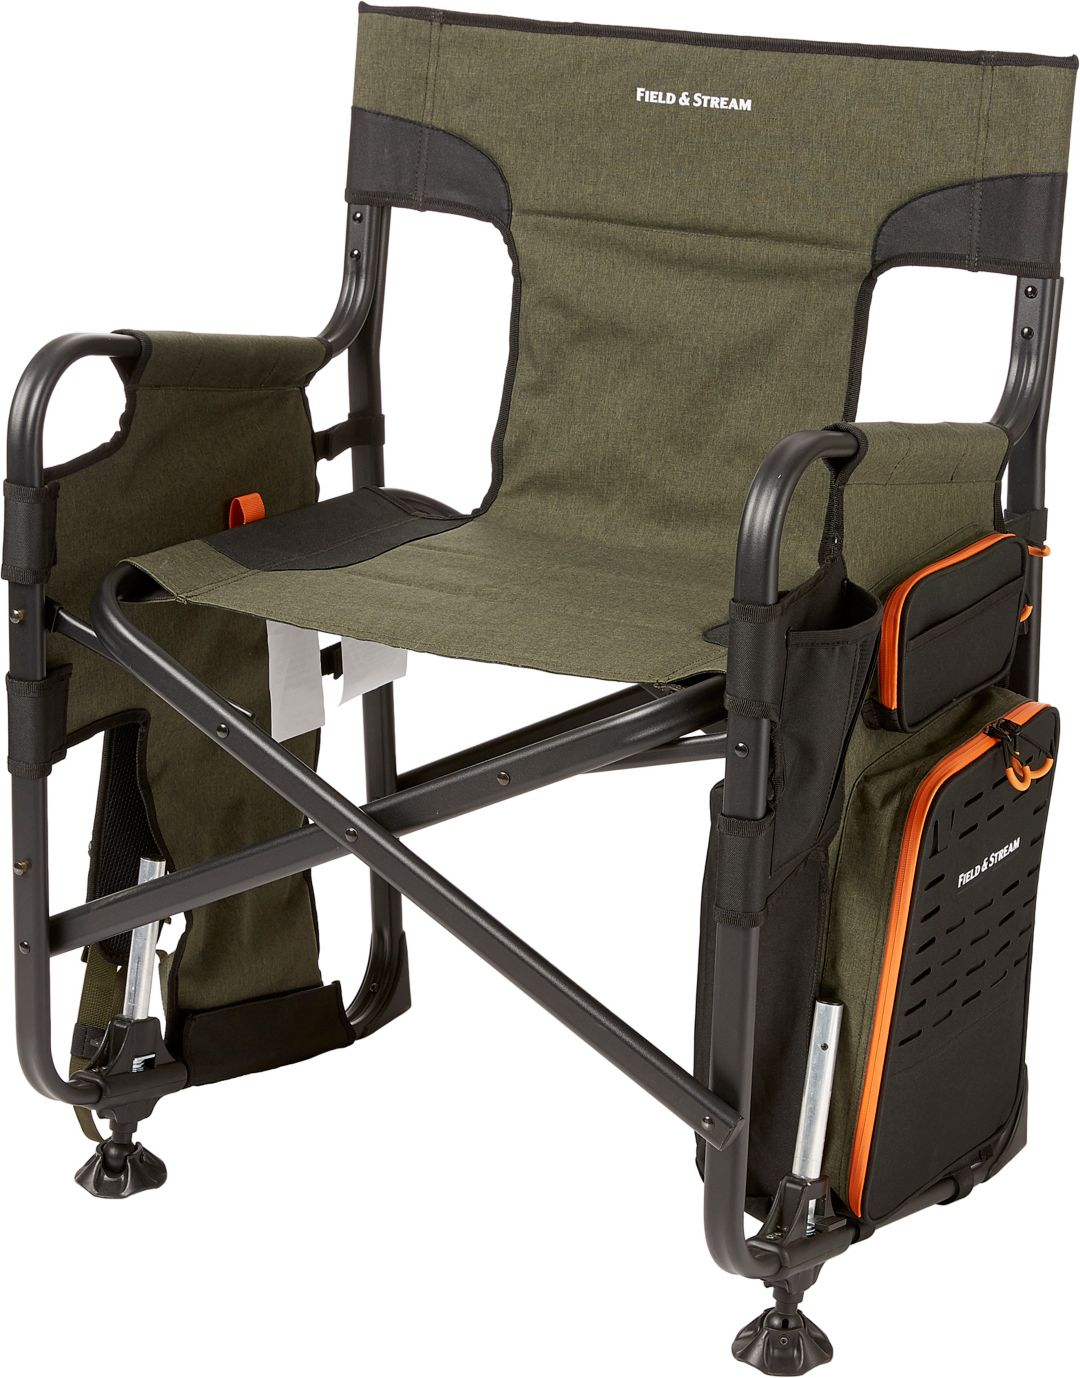 Prime Field Stream Ultimate Tackle Chair Gmtry Best Dining Table And Chair Ideas Images Gmtryco